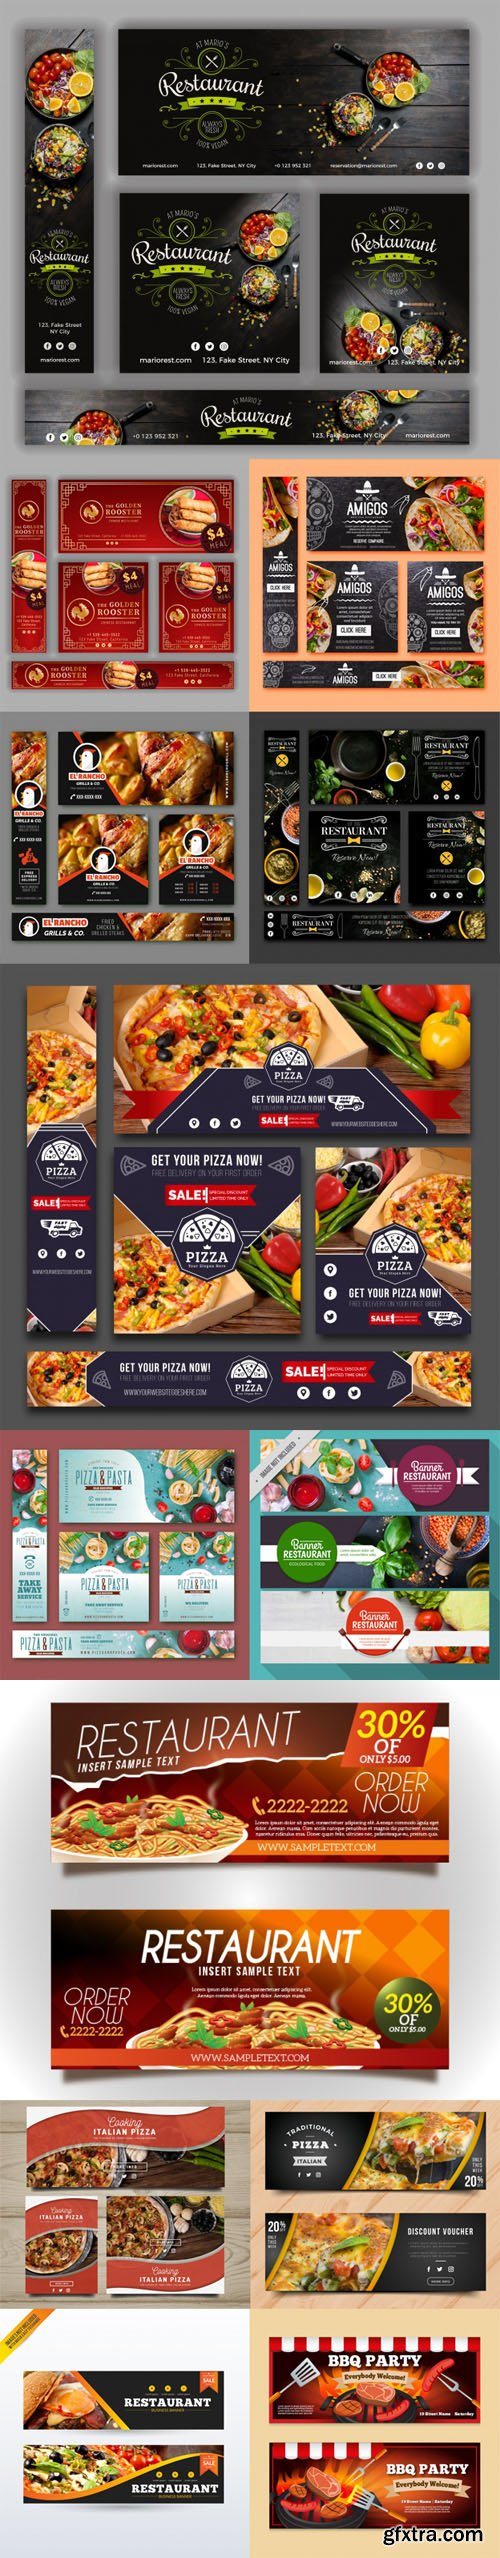 50 Colorful Restaurant Banners Collection in Vector [Ai/EPS]